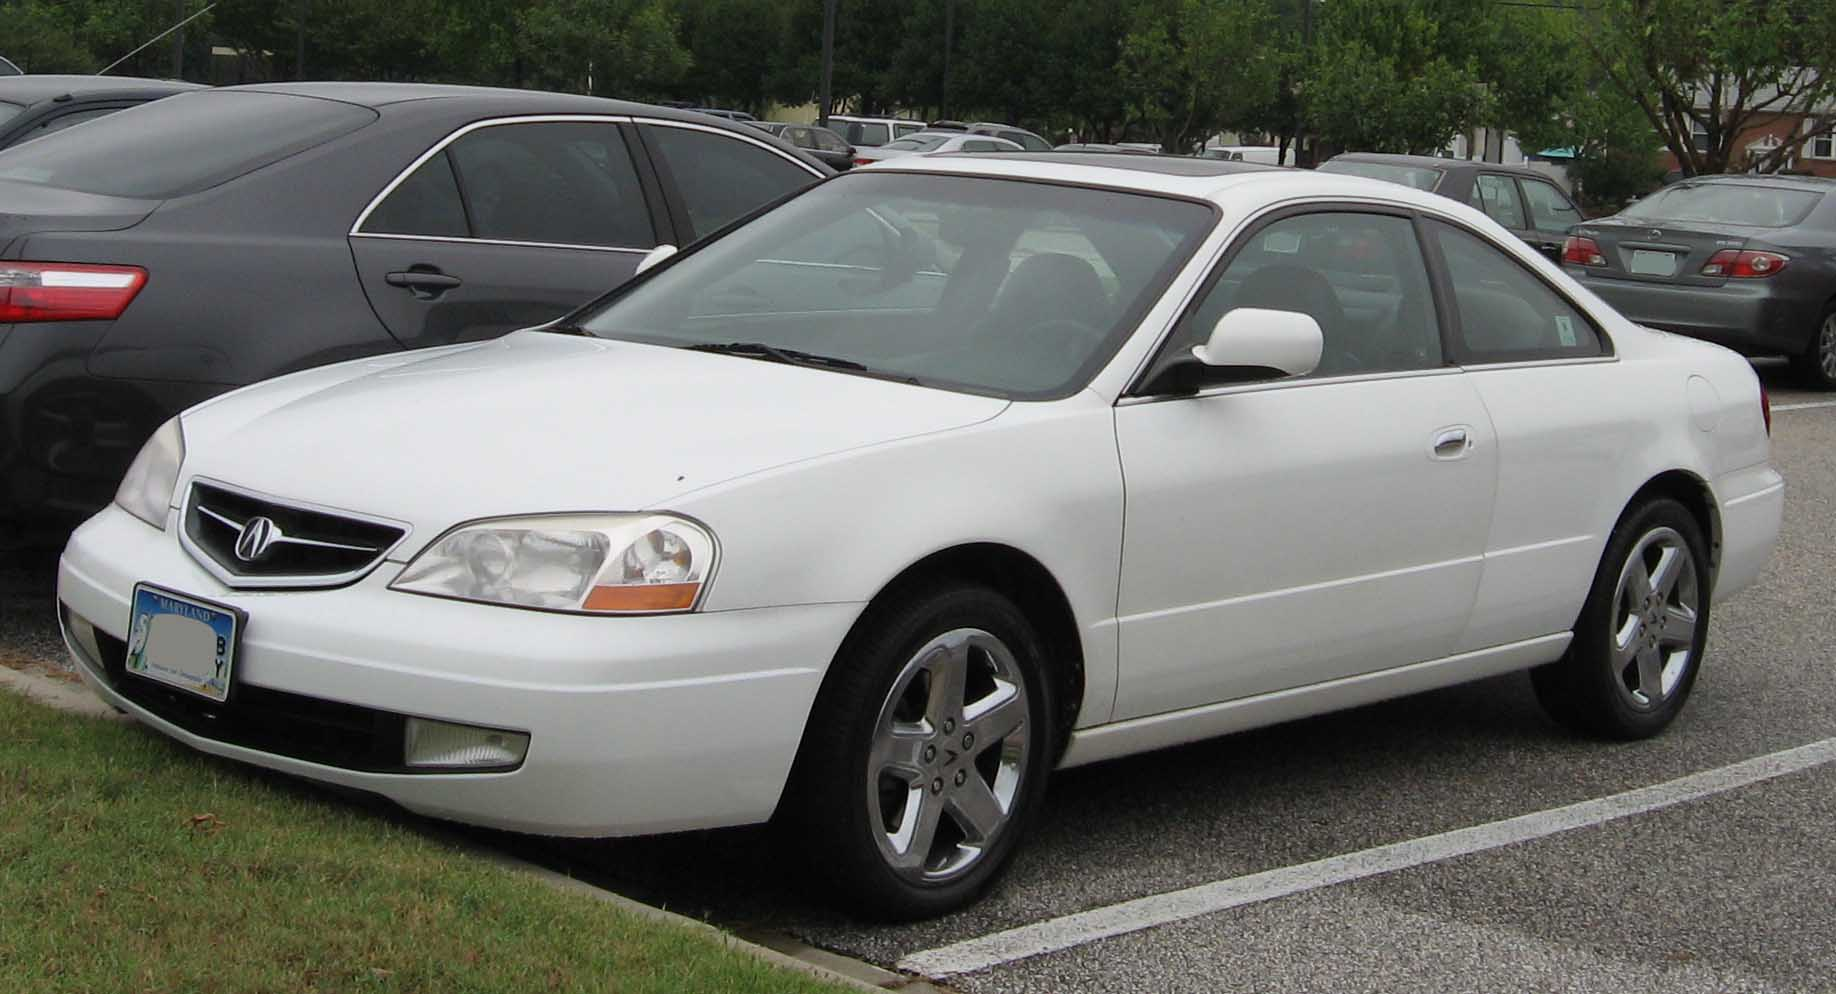 File:01-03 Acura CL.jpg - Wikimedia Commons